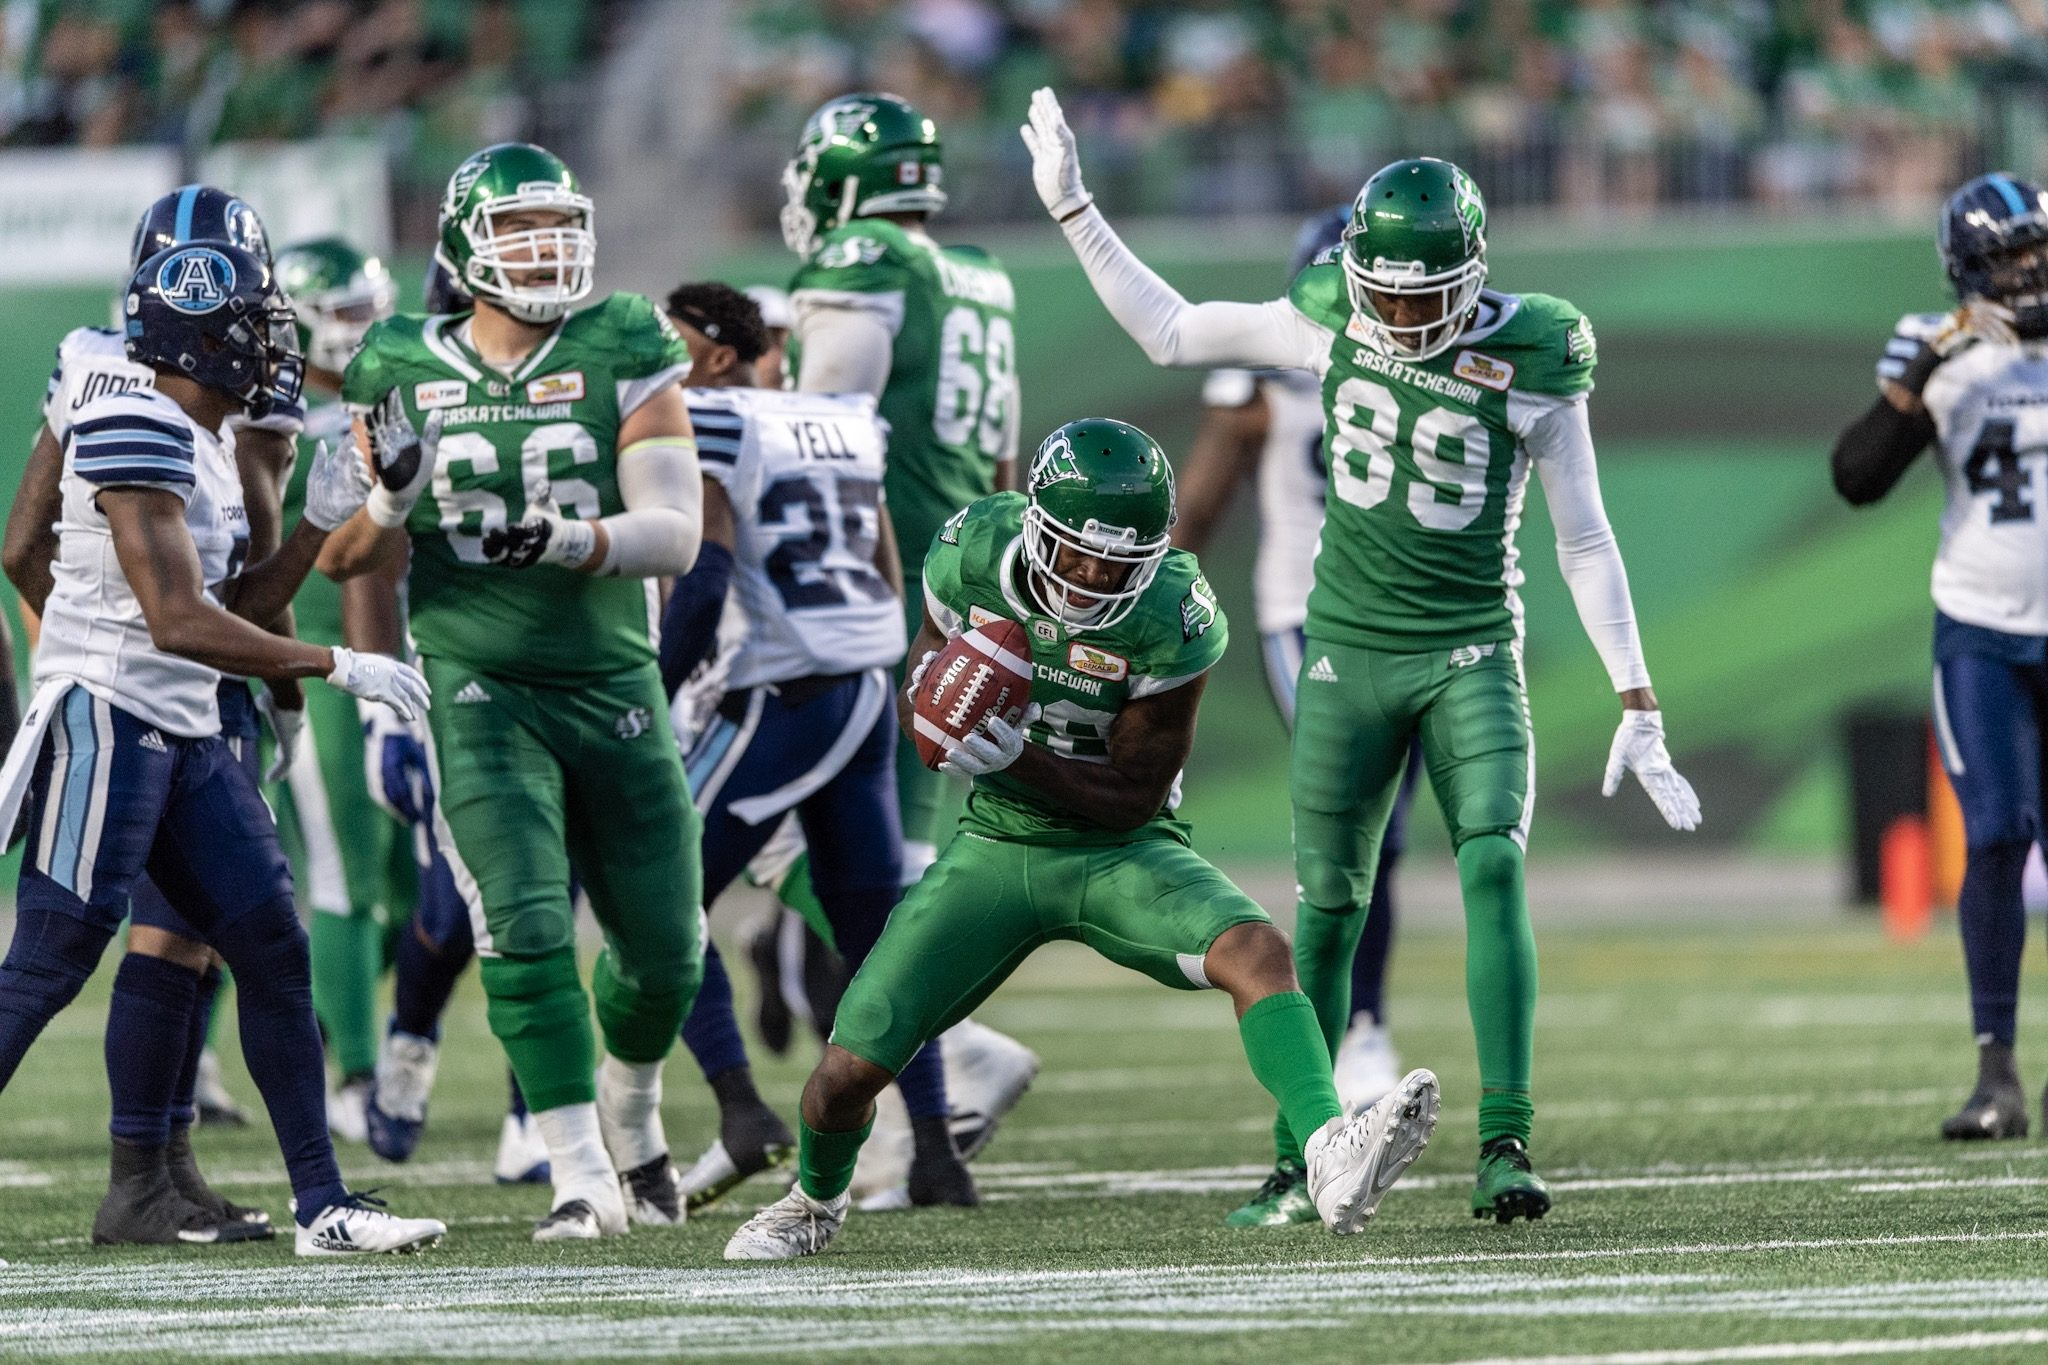 Saskatchewan Roughriders players celebrating during a CFL game